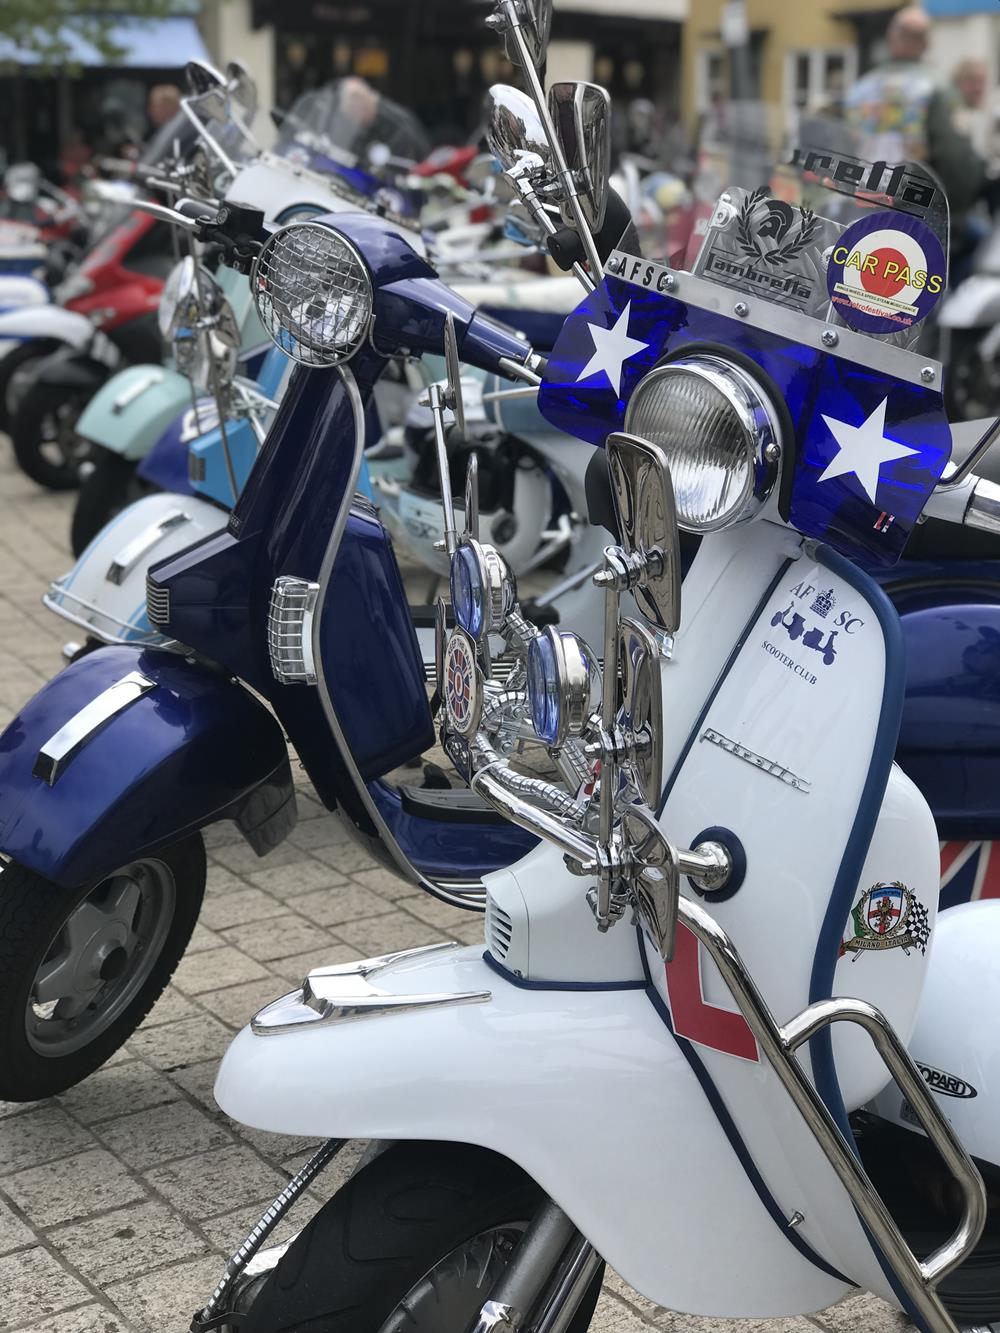 White mod-style Lambretta with flyscreen and crashbars